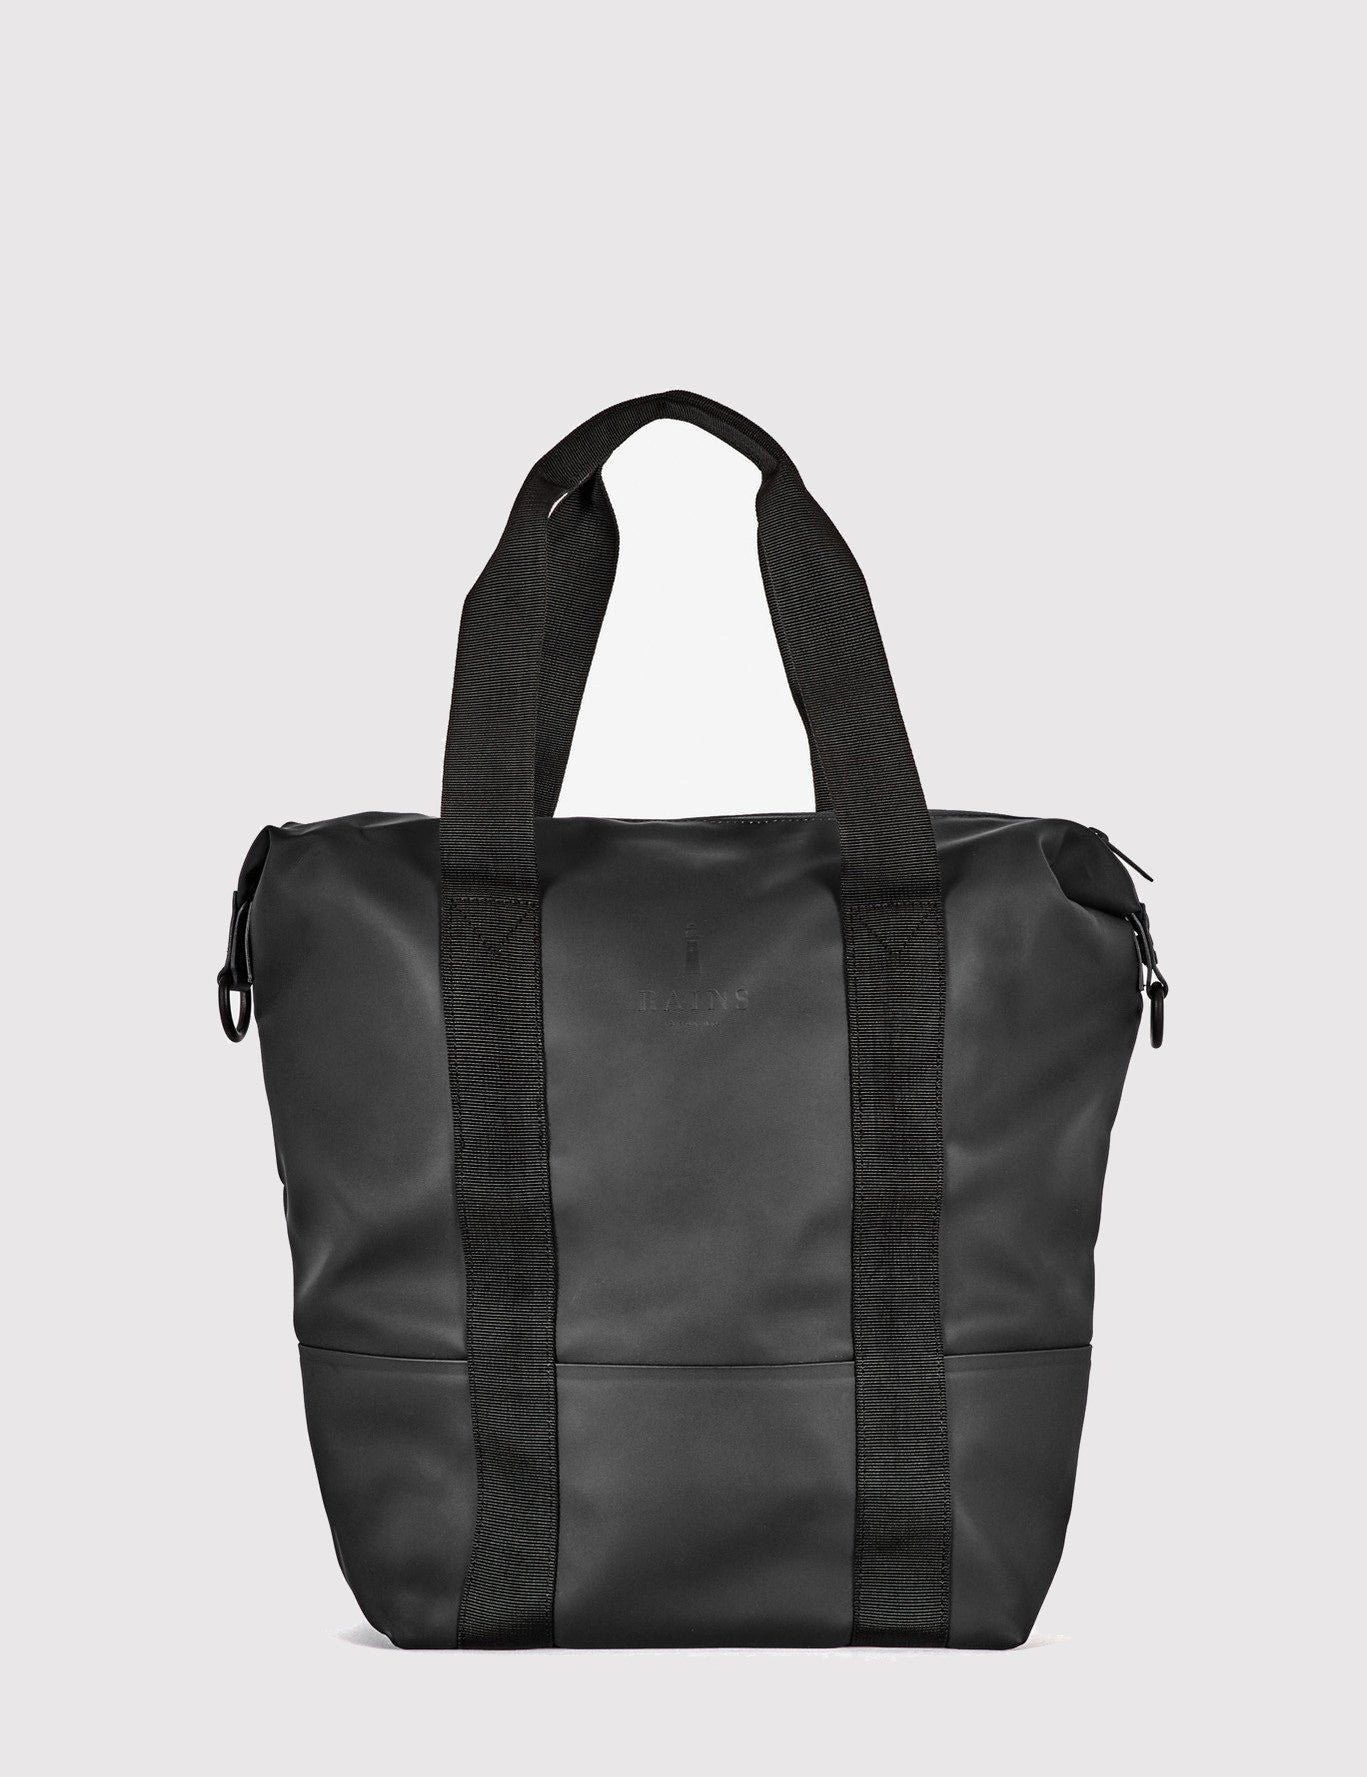 Rains City Bag - Black